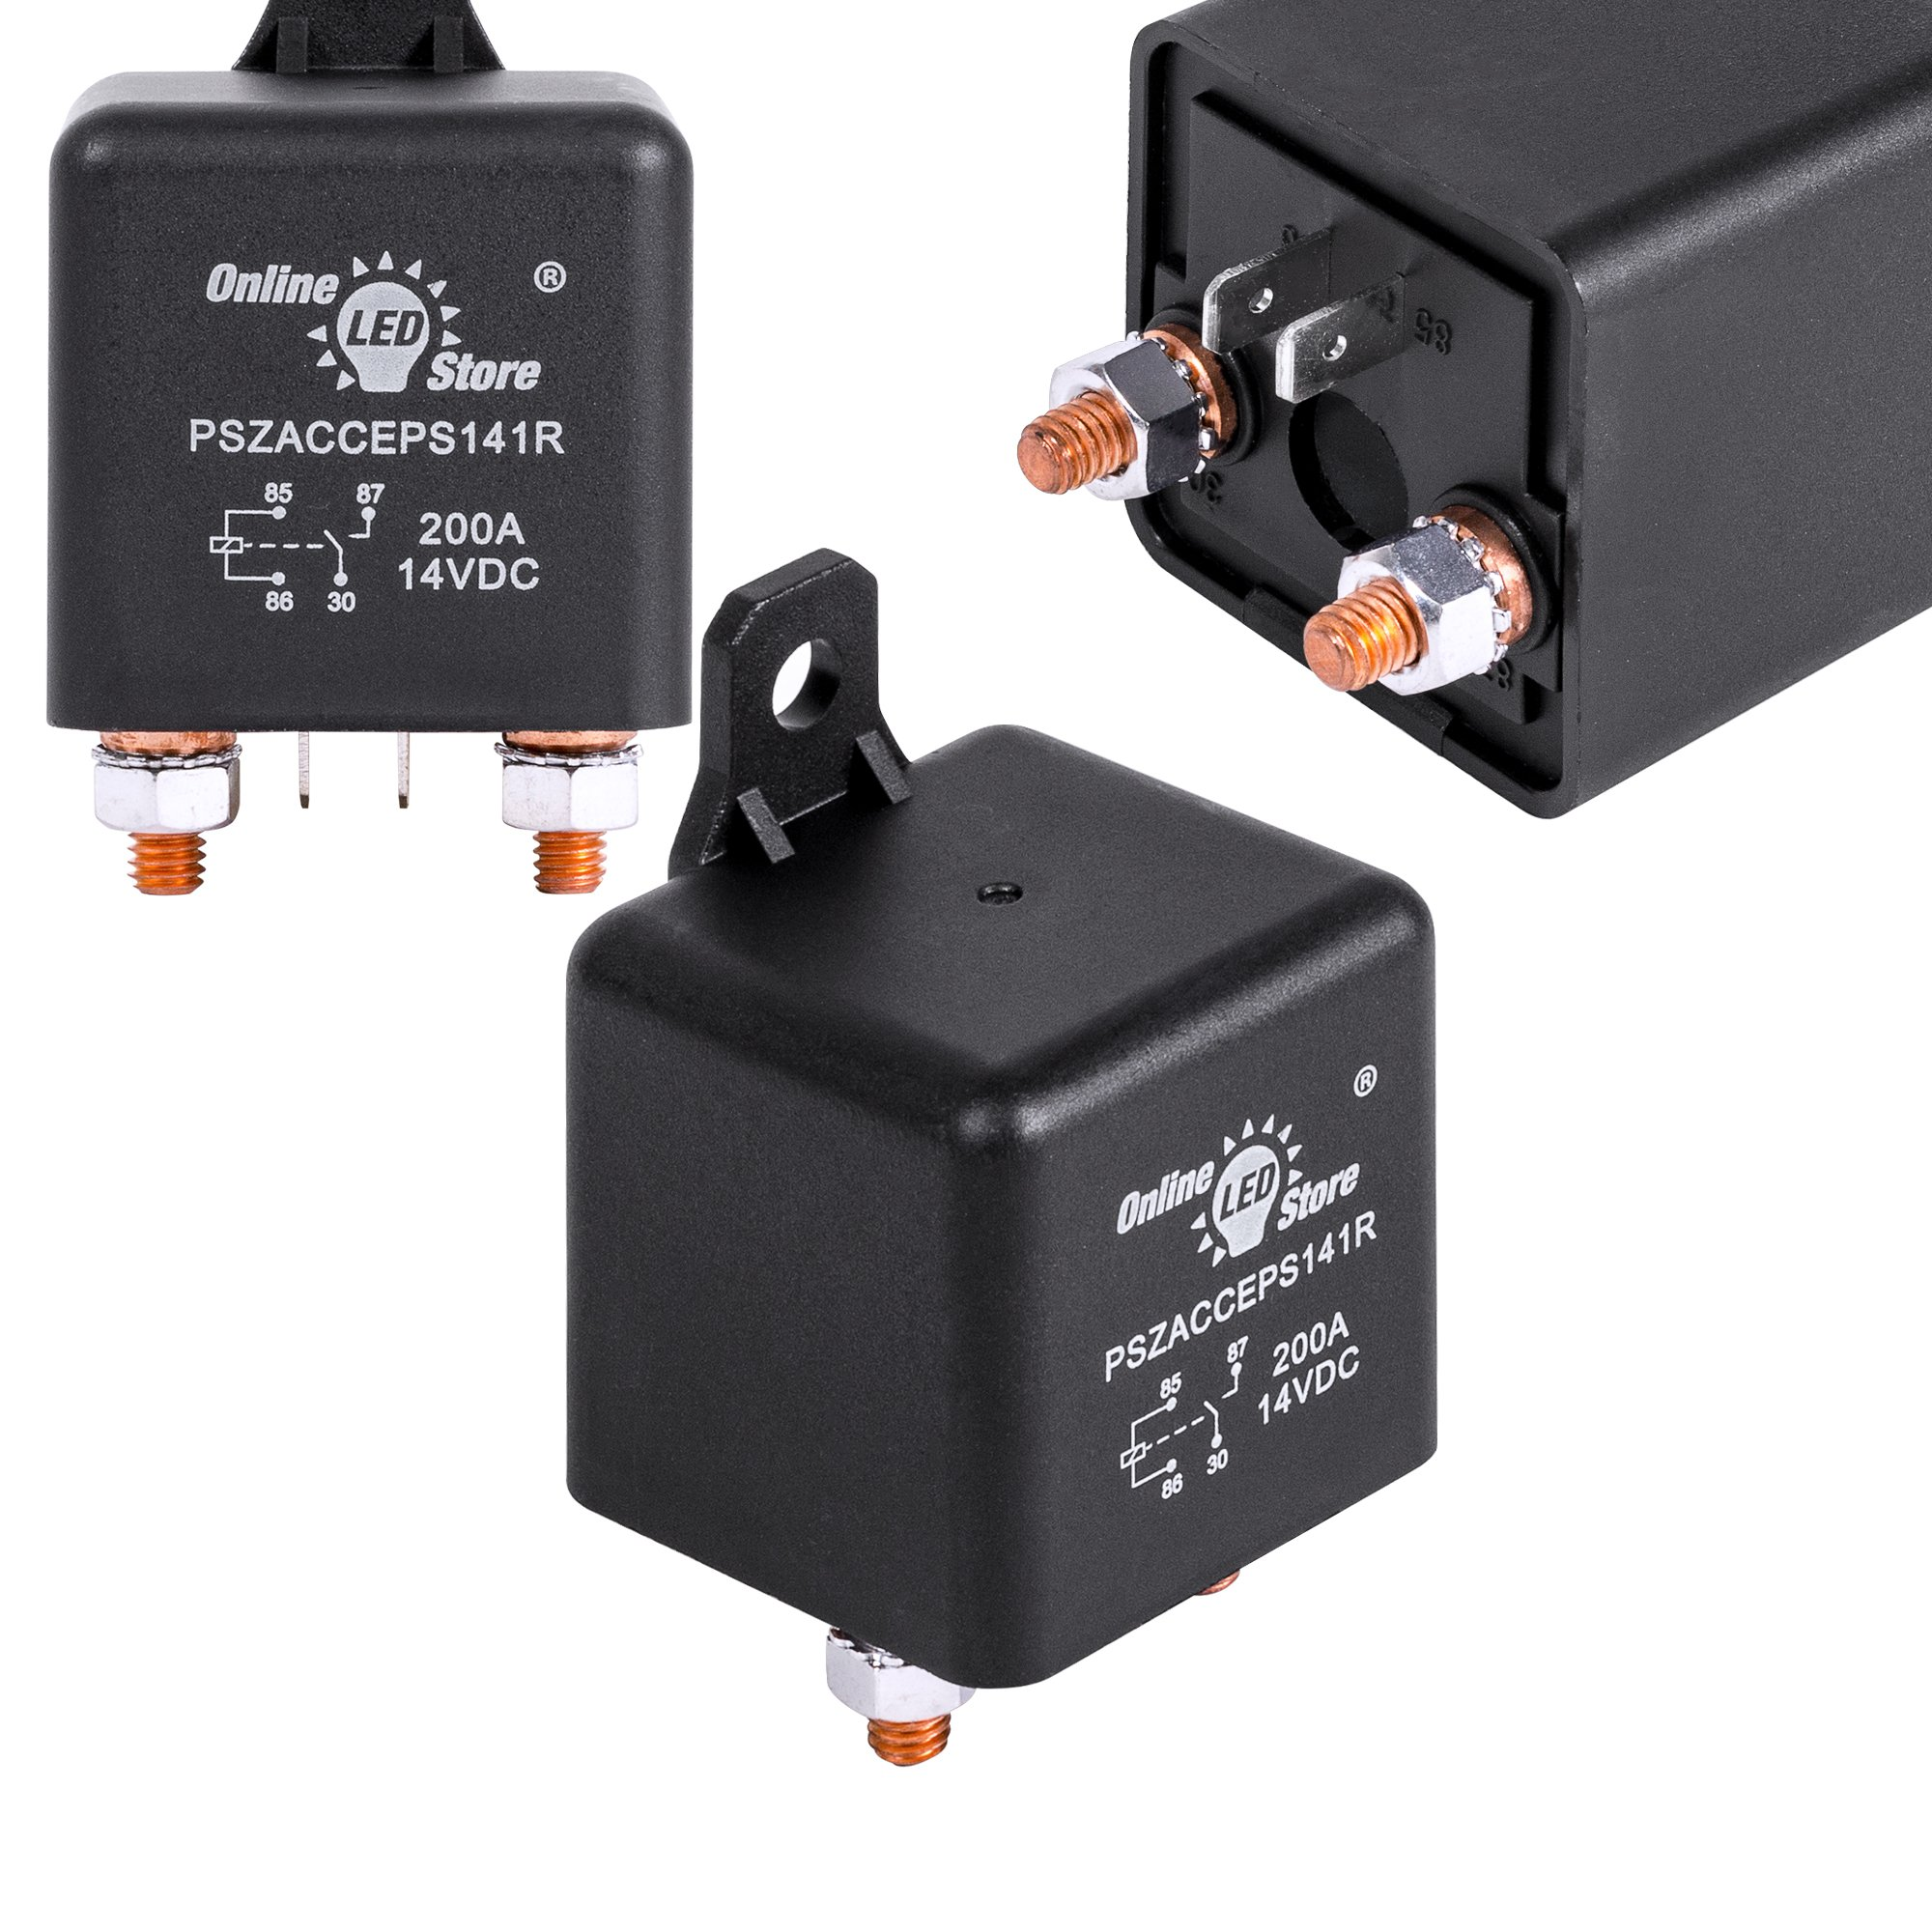 Best Rated In Automotive Replacement Starter Relays Helpful Relay Toggle Circuit Electronic Directory Online Led Store 12v Dc 200 Amp Split Charge Switch 4 Terminal For